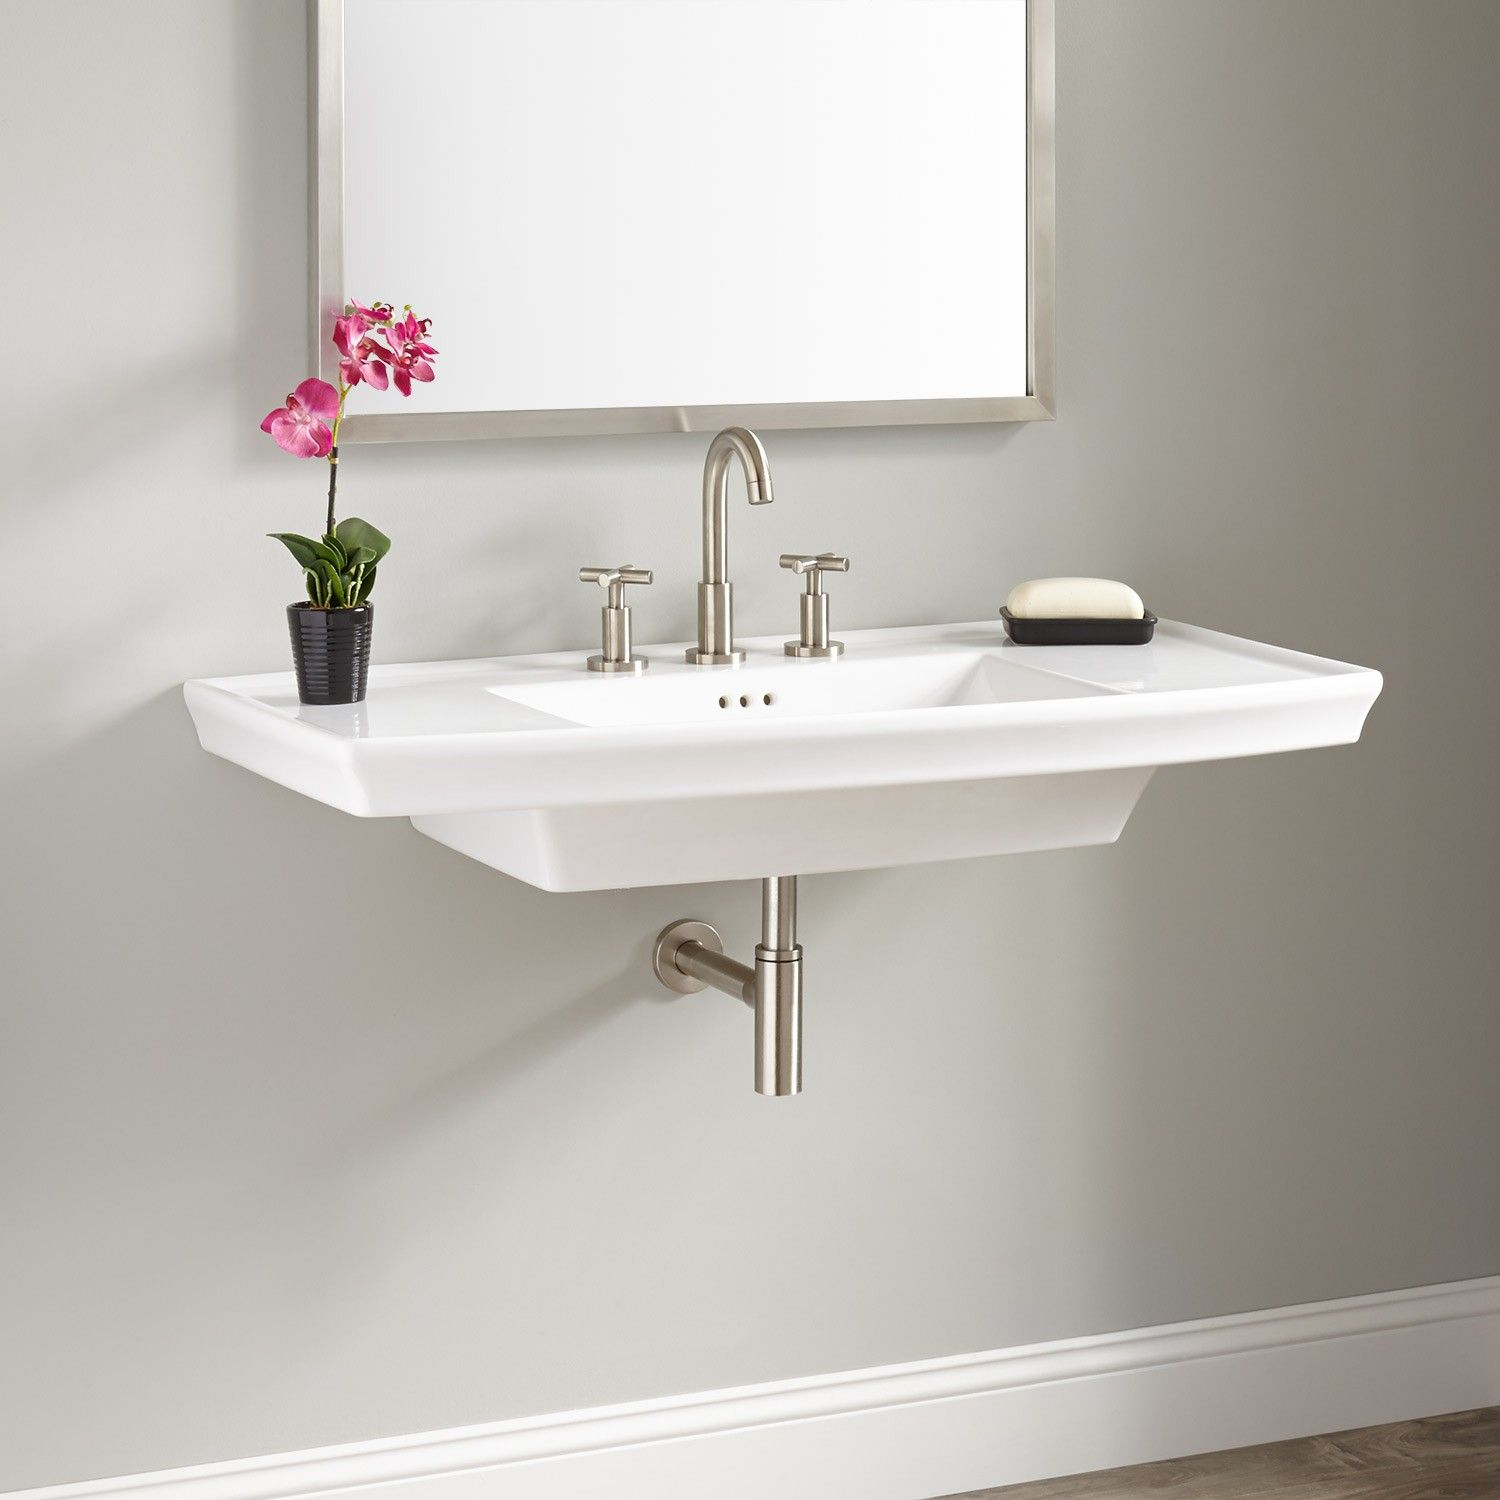 Wall Mount Sinks Bathroom